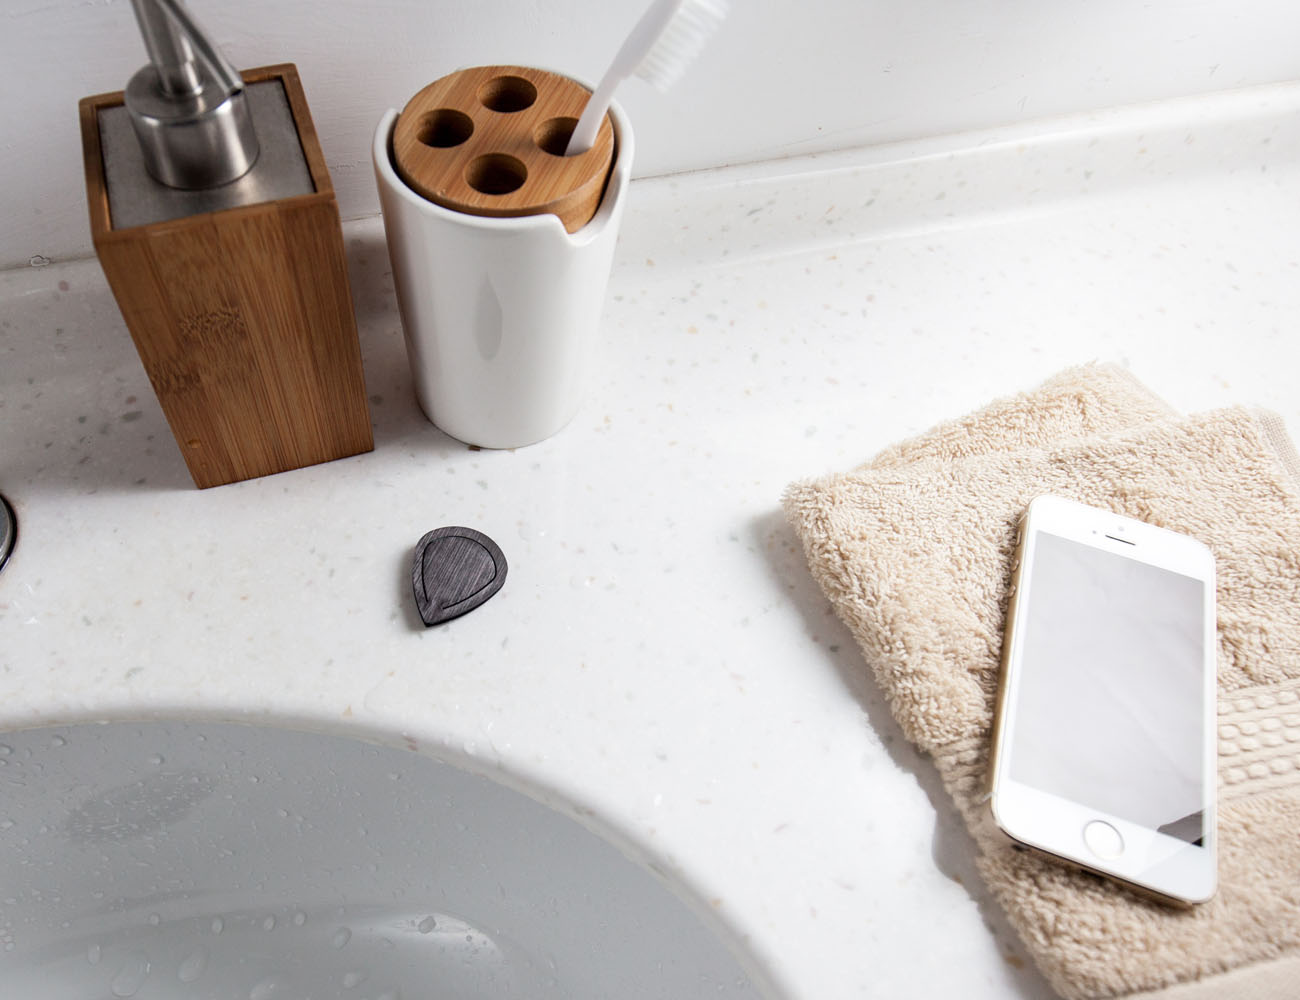 Qmote: The Water-Resistant Internet Remote For Smartphones